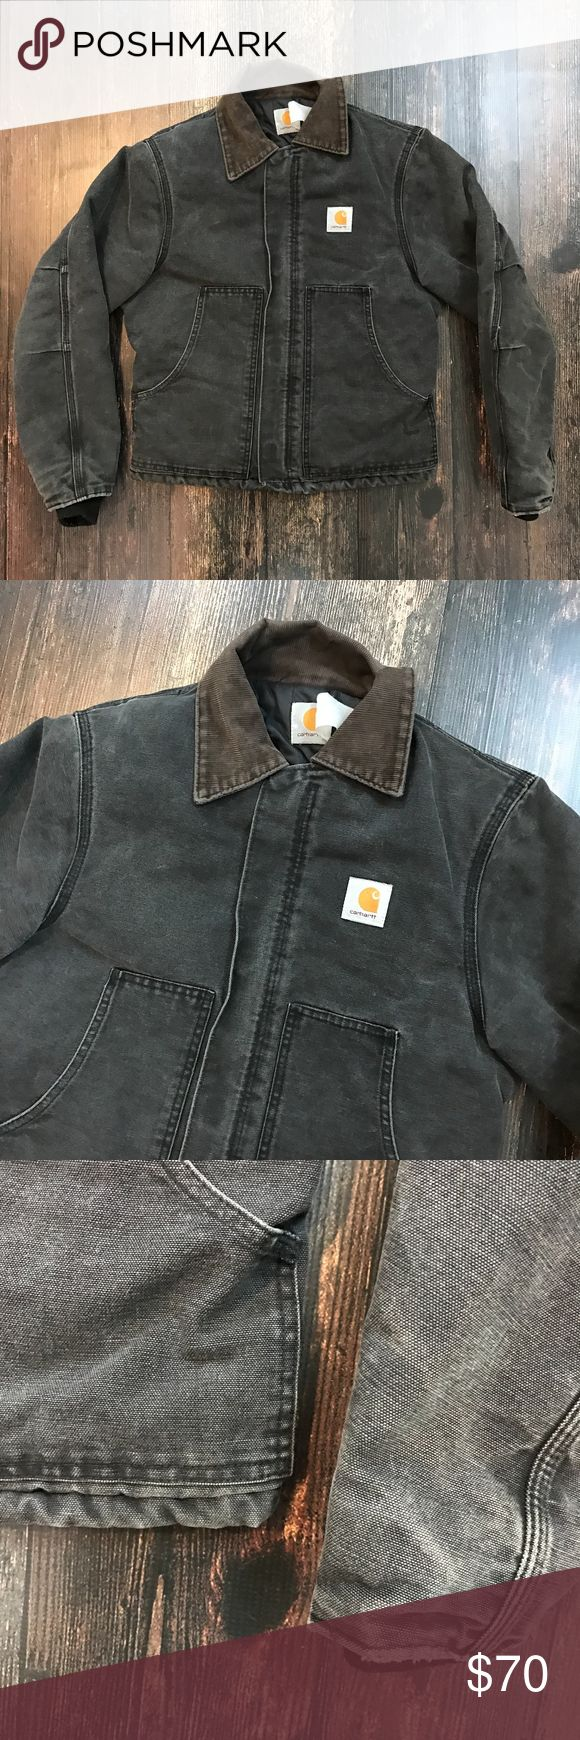 """CARHARTT Duck Canvas Traditional Work Coat Chest (PTP): 20"""" Length (Neck to Hem): 23.5"""" Shoulders (Seam to Seam): 18"""" Sleeve (Pit to Cuff): 18.5""""  Classic Carhartt style and quality. Arctic quilted lining. Corduroy collar. Good condition, some wear around edges (see photos).  No size tag, please refer to measurements. Carhartt Jackets & Coats"""